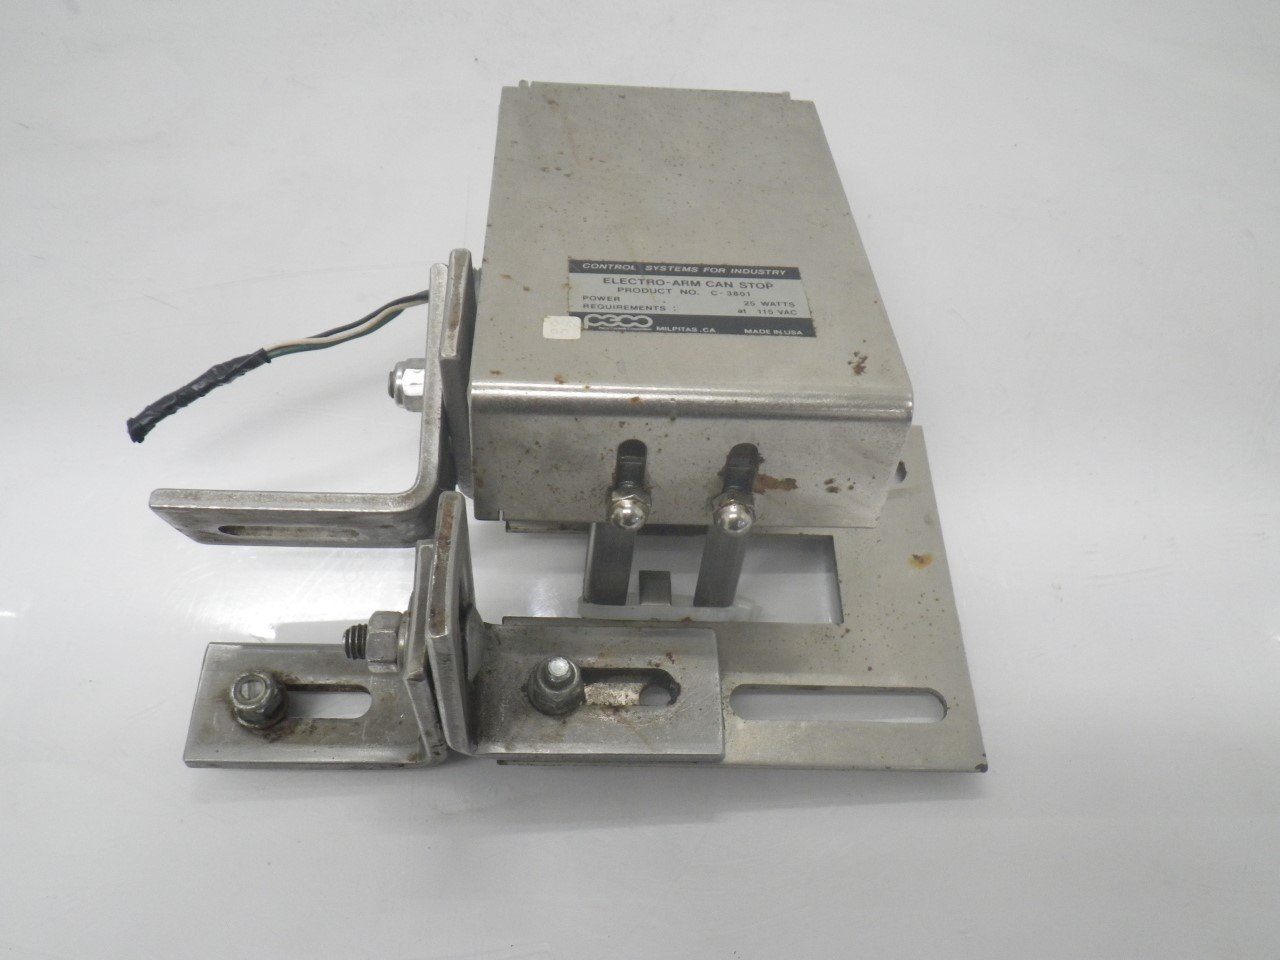 IMGP6937C-3801 C-3800A 3012Peco Electro-arm Controls forPackage Inspection(Used Tested) (2)